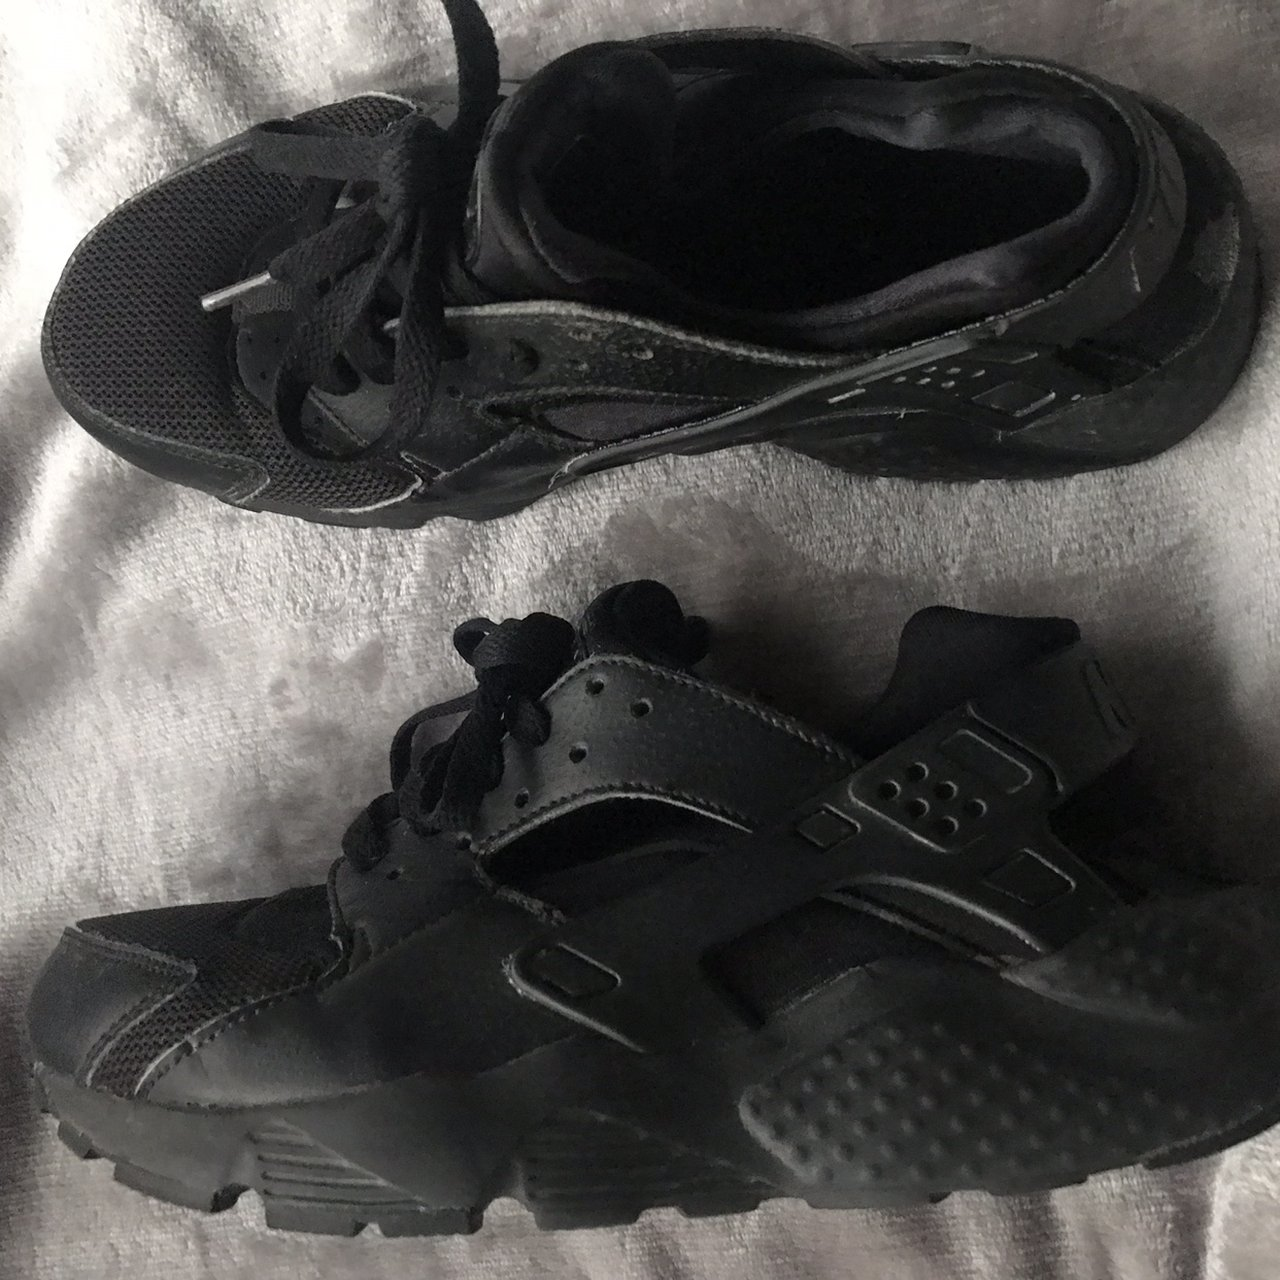 75783ce12d4e Nike Air Huarache triple black in a size 6